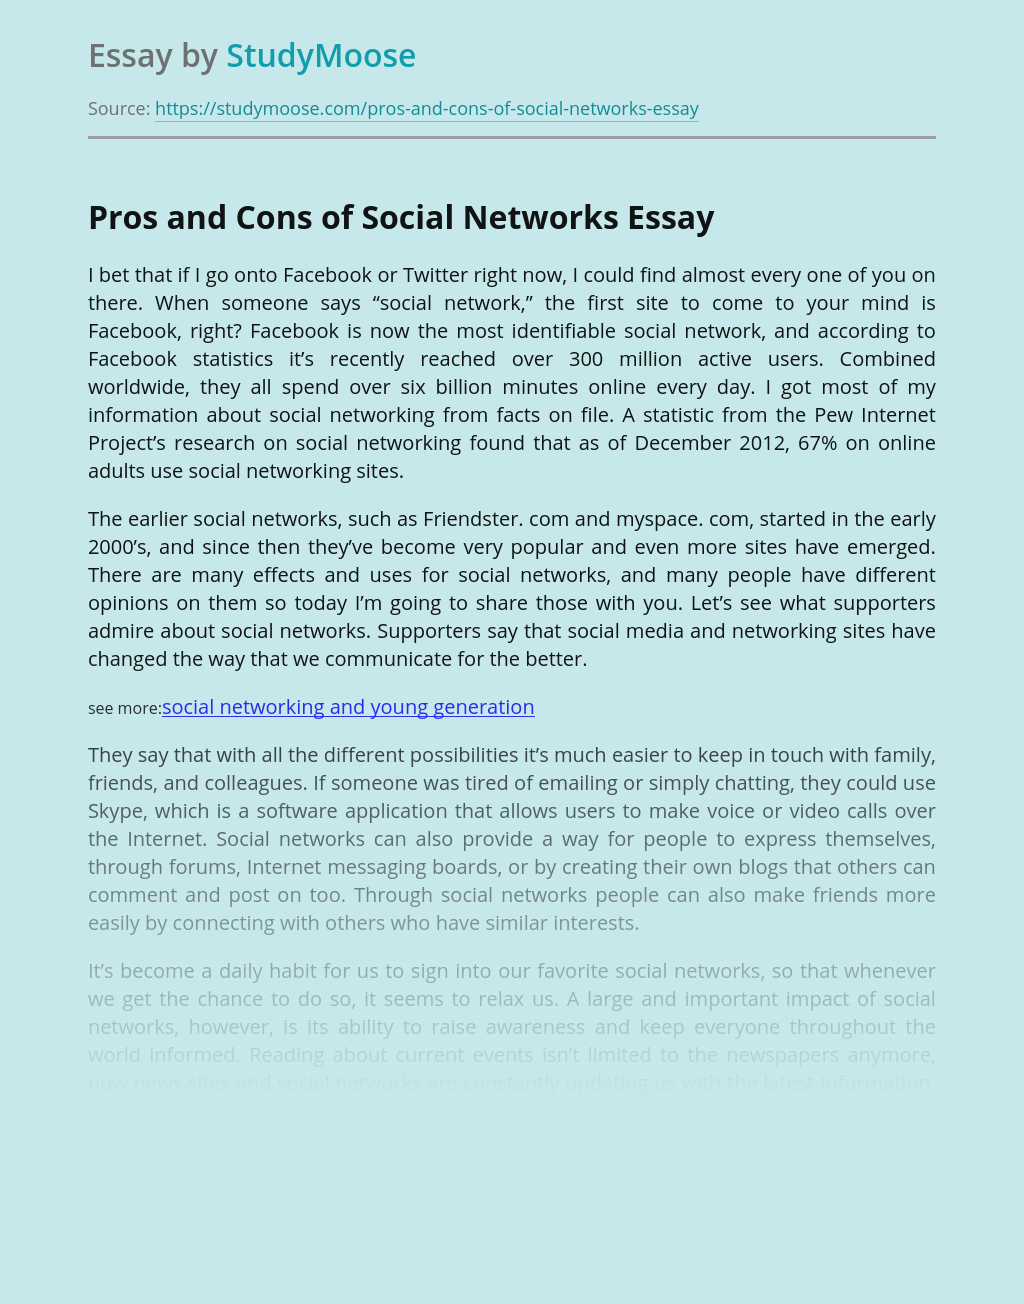 Pros and Cons of Social Networks